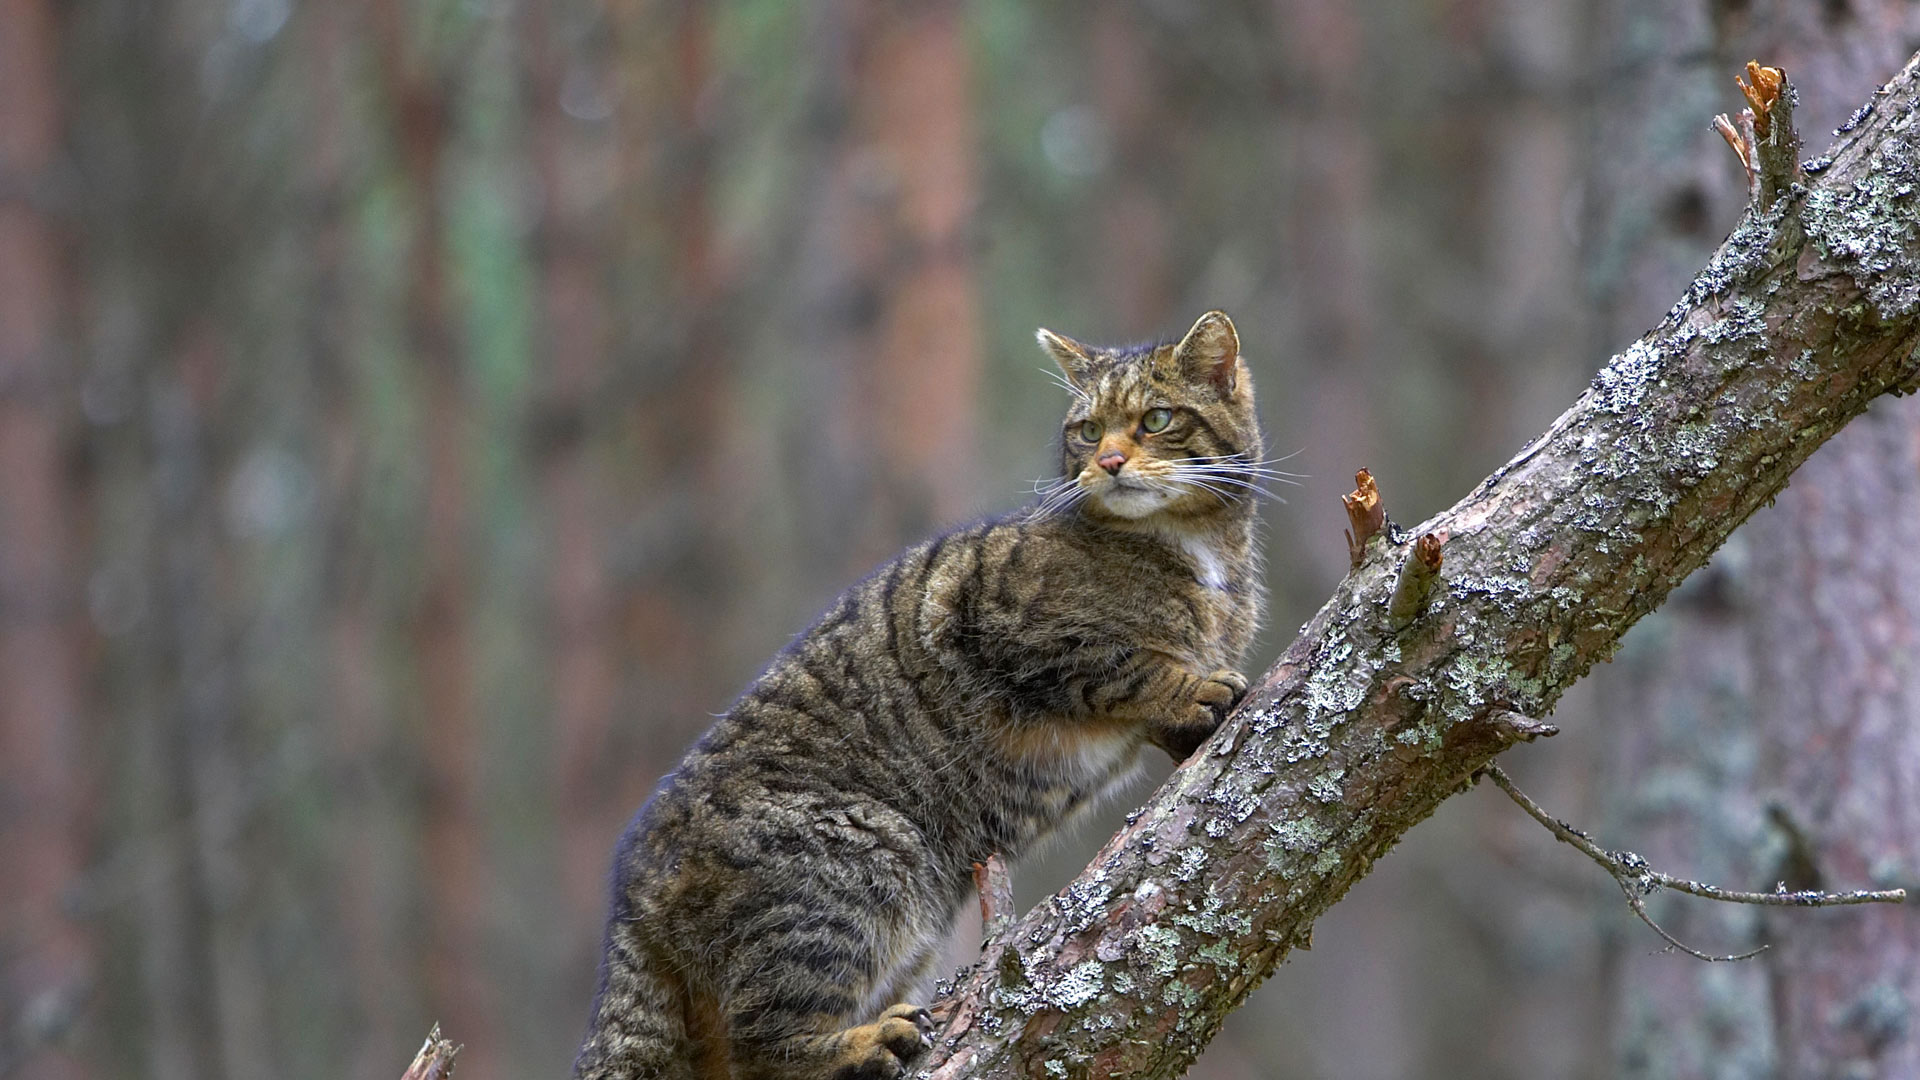 A Scottish wildcat in Cairngorms National Park, Scotland (© Pete Cairns/Minden Pictures)